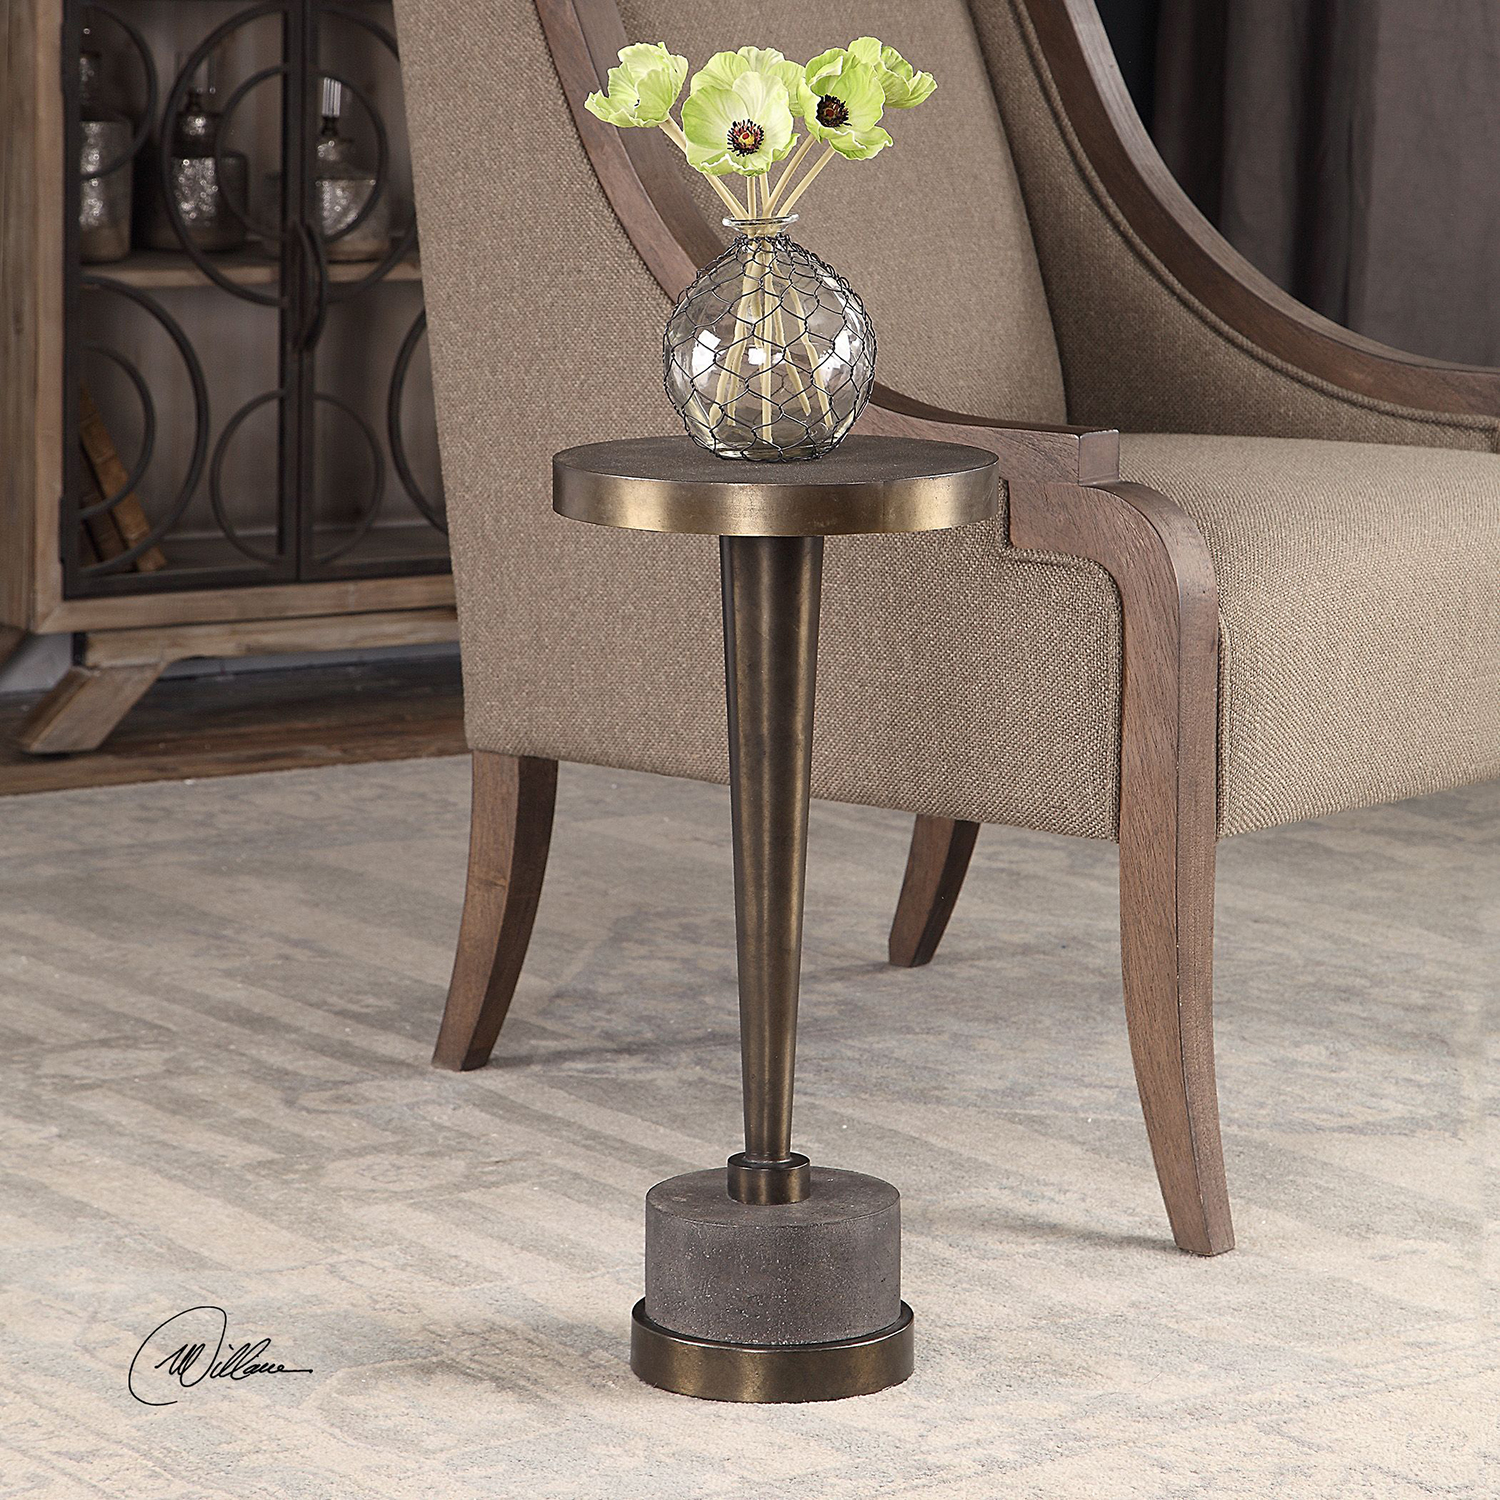 uttermost masika bronze accent table bellacor antique hover zoom dining room sage green coffee better homes and gardens multiple colors oak bar mirrored bedside ikea tall grey